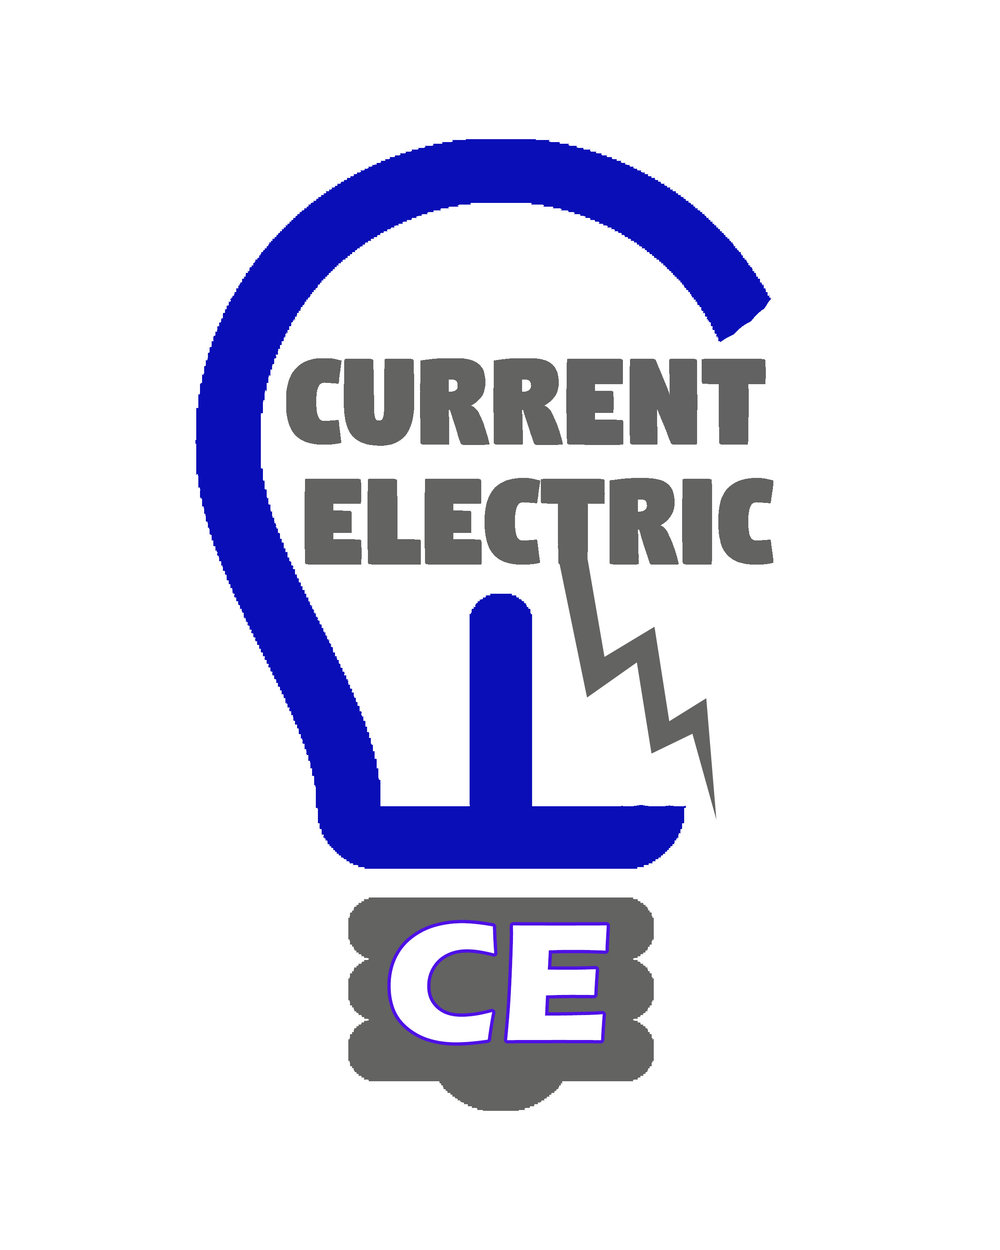 Current electric-Recovered.jpg